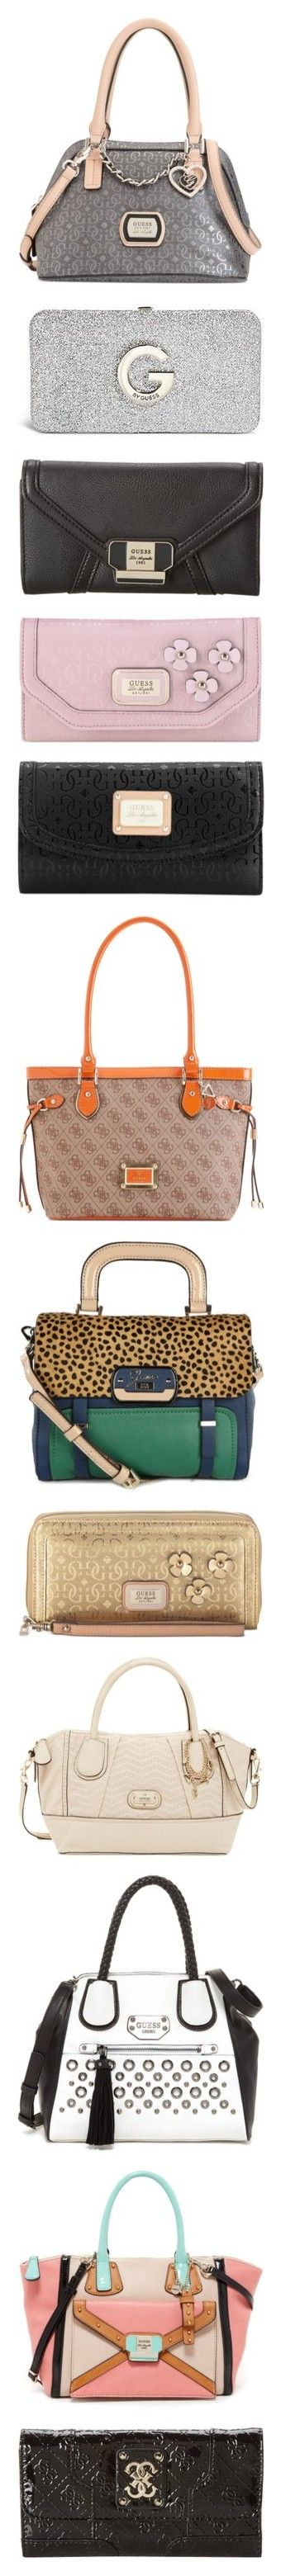 """""""Purses 91"""" by singlemom ❤ liked on Polyvore featuring bags, handbags, hand bags, handbag satchel, satchel purses, vegan leather purses, man bag, wallets, guess bags and guess wallets"""